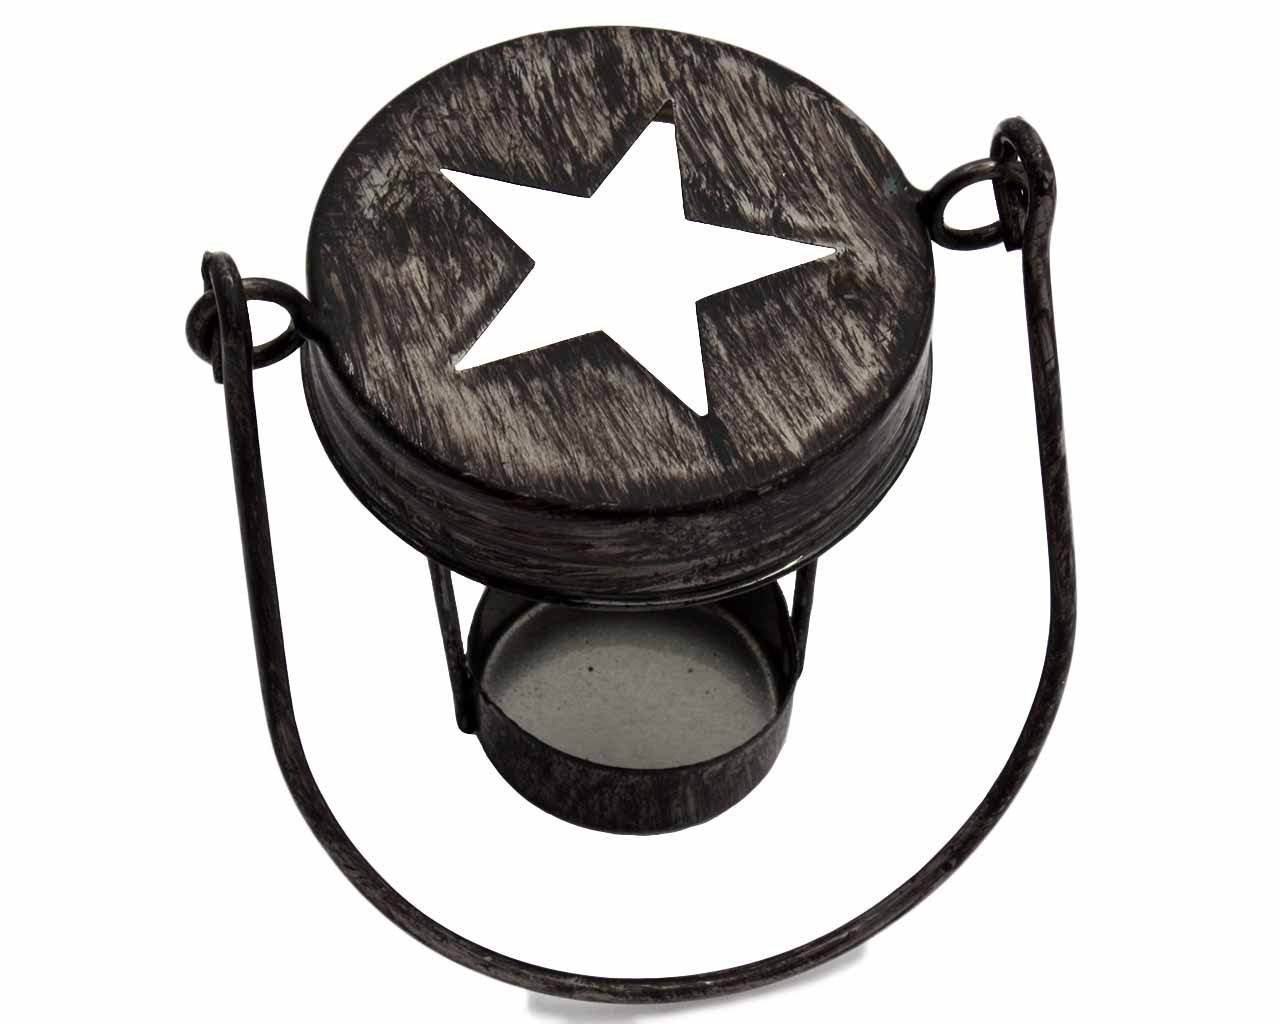 Star Cutout Tea Light Candle Holder Lids for Regular Mouth Mason Jars (3 Pack, Antique Black with Handle)